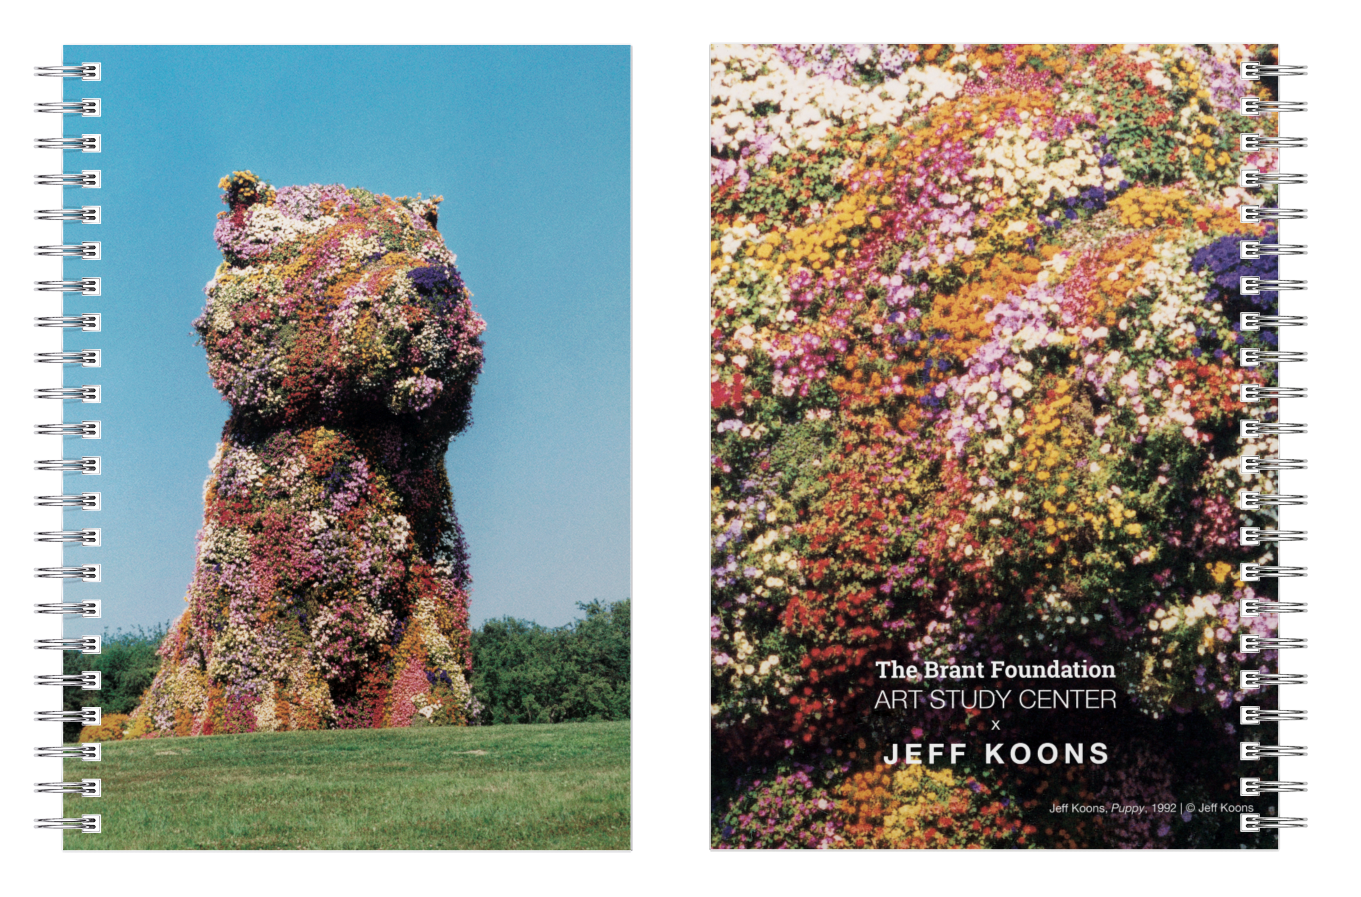 Jeff Koons Puppy Notebook - 9 x 6 inches